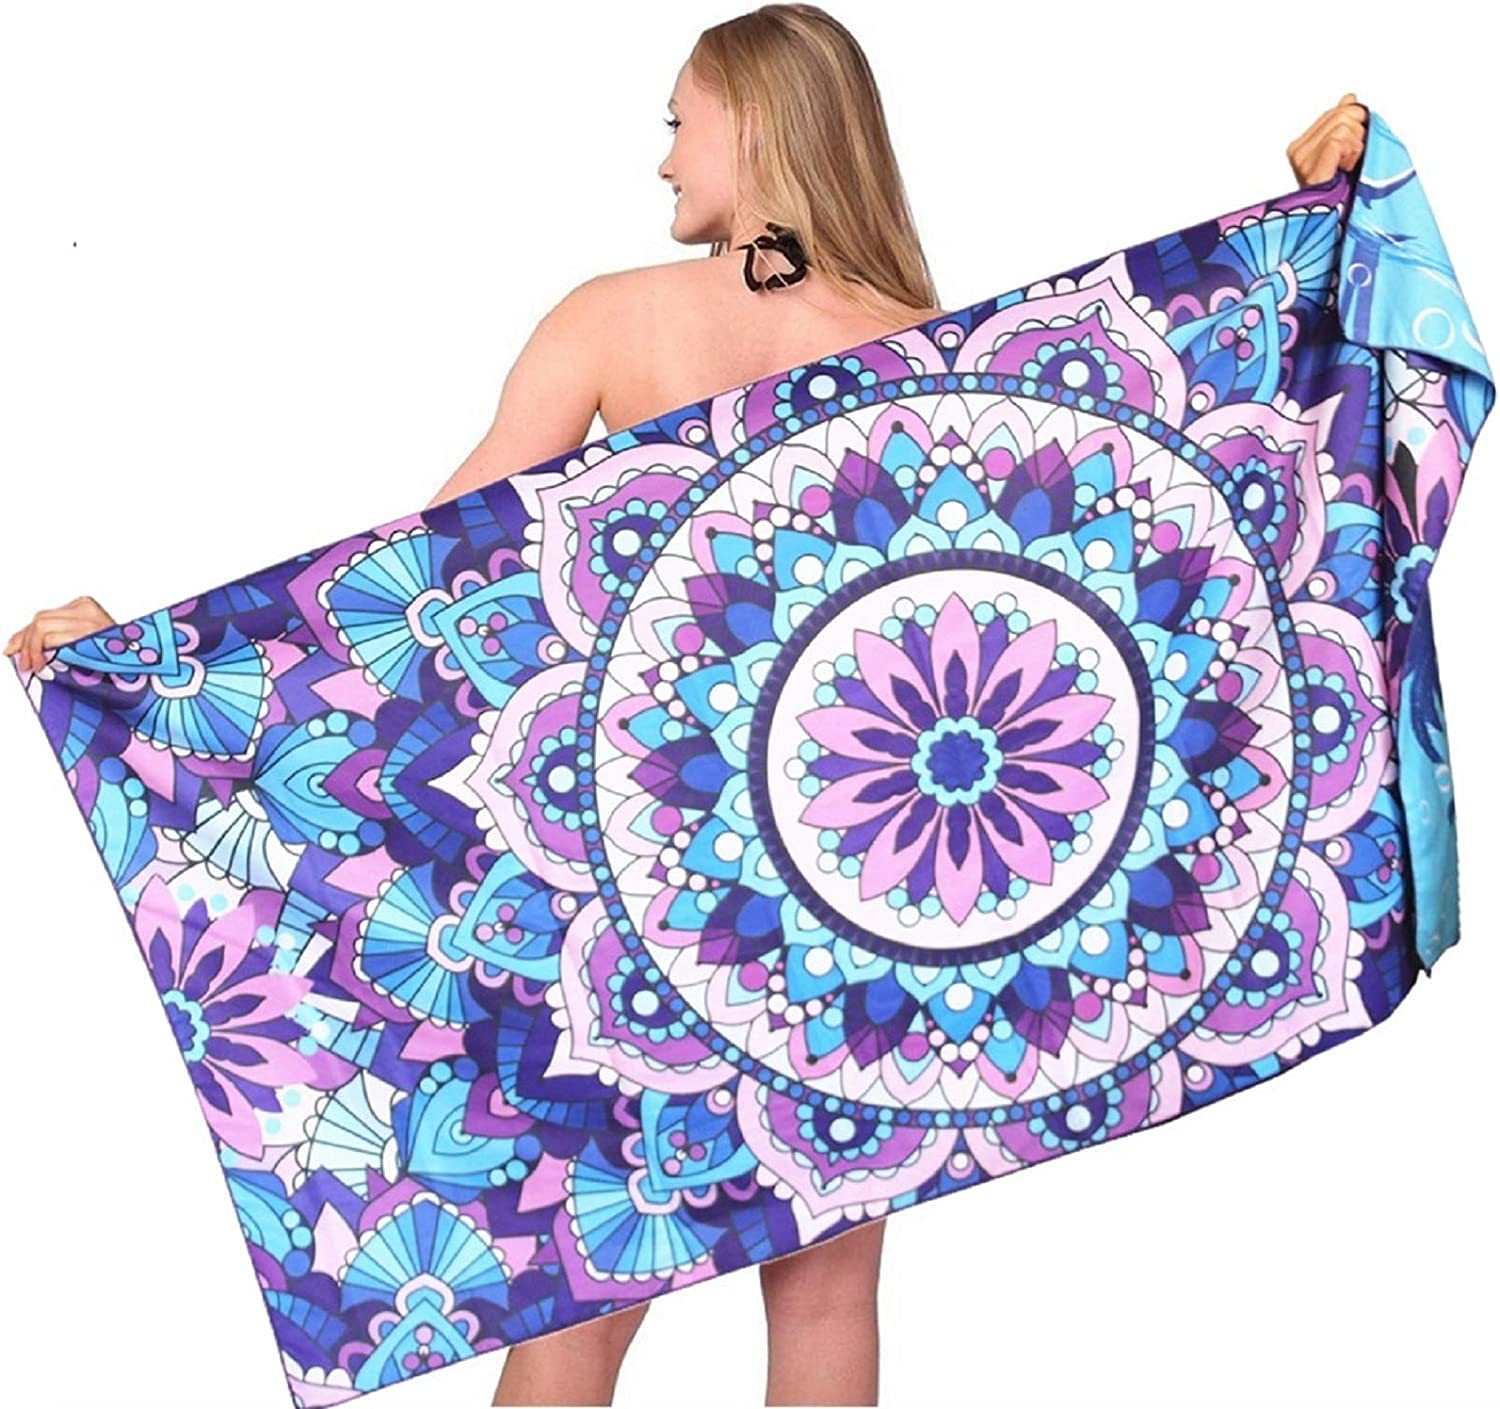 Microfiber Sand Ranking integrated 1st place Free Max 58% OFF Beach Towel-Quick Super Dry Overs Absorbent